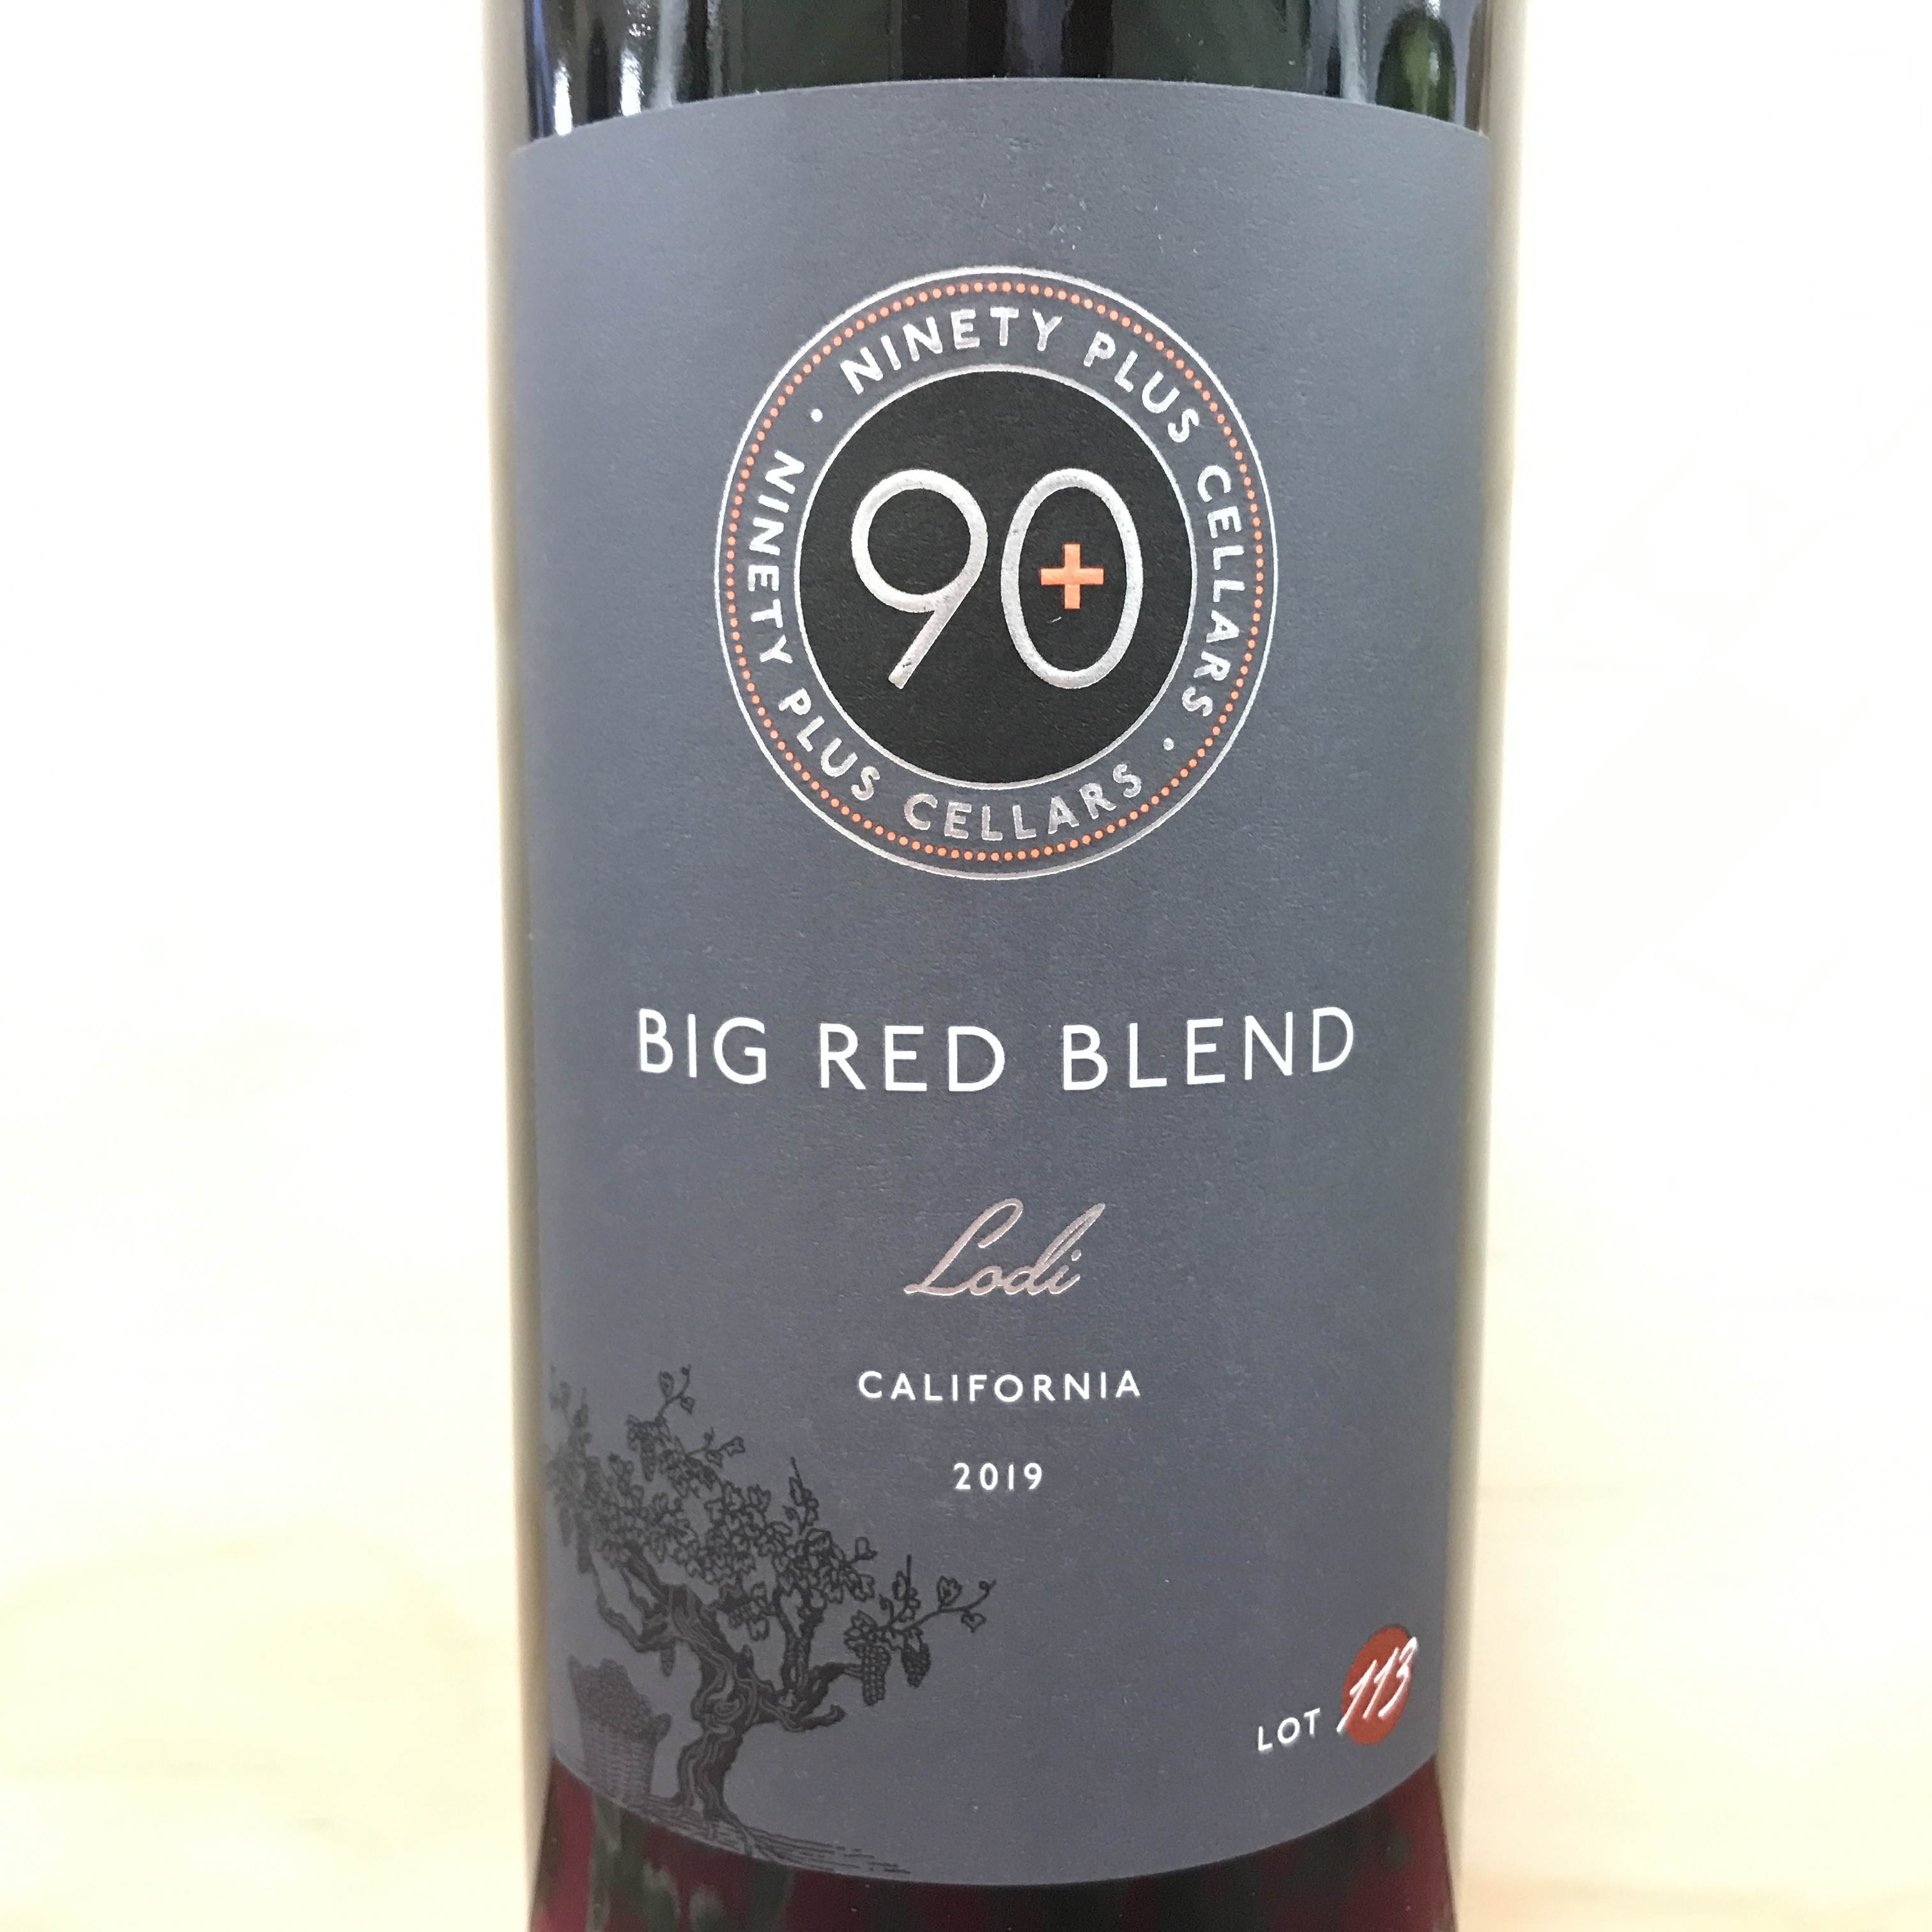 90+ Cellars Big Red Blend Lodi 2019